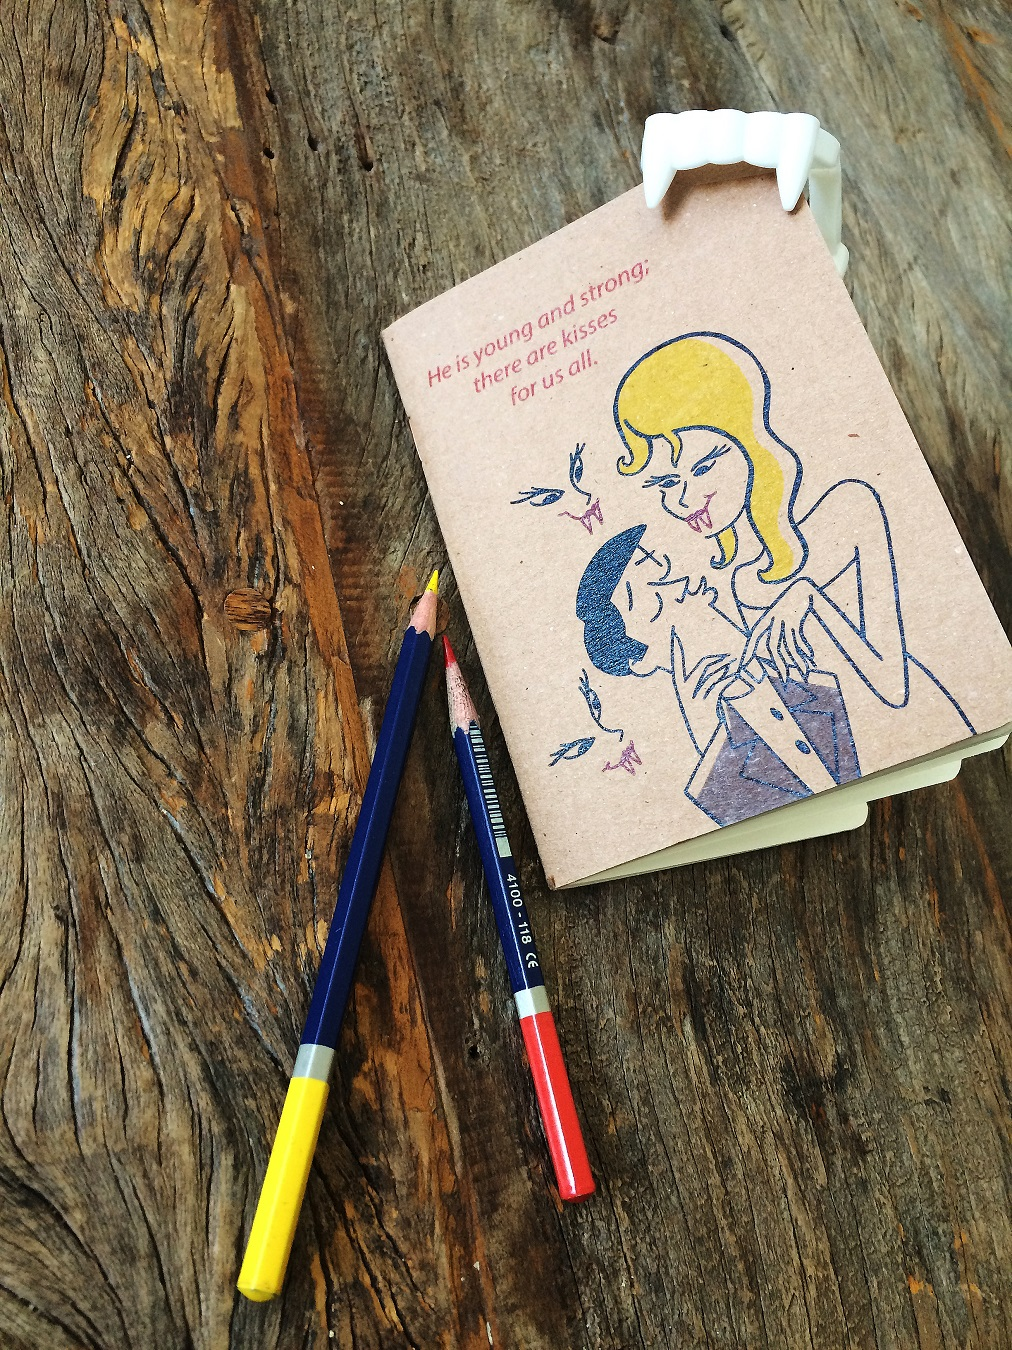 Dracula Notebook by At it Again! with pencils and vampire teeth